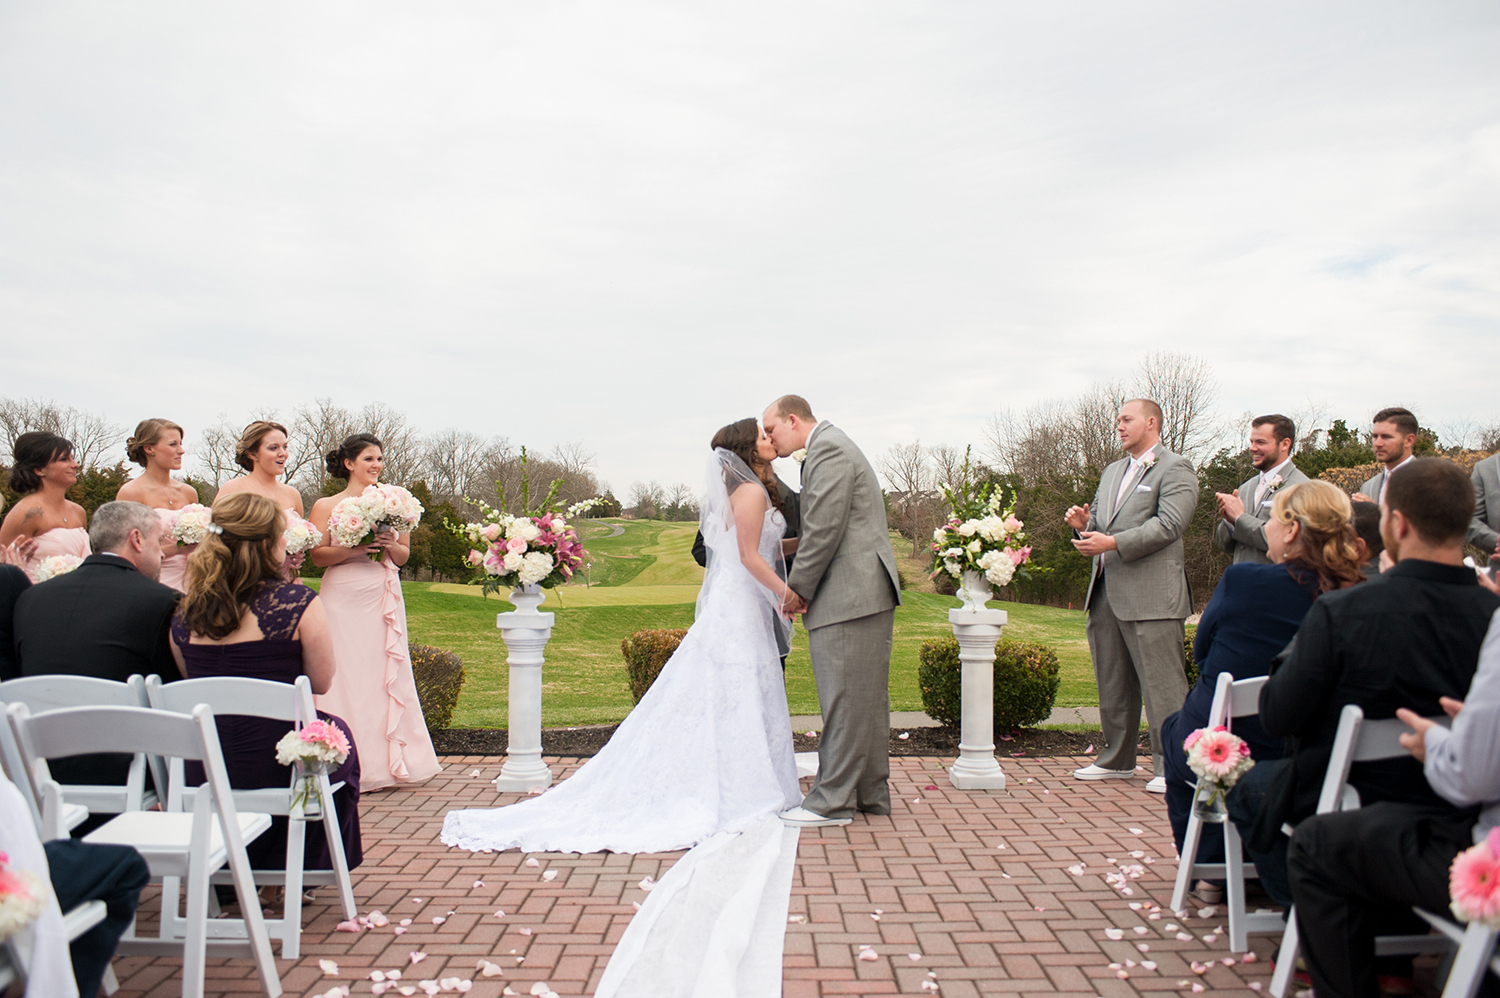 bride and groom first kiss in outdoor wedding ceremony